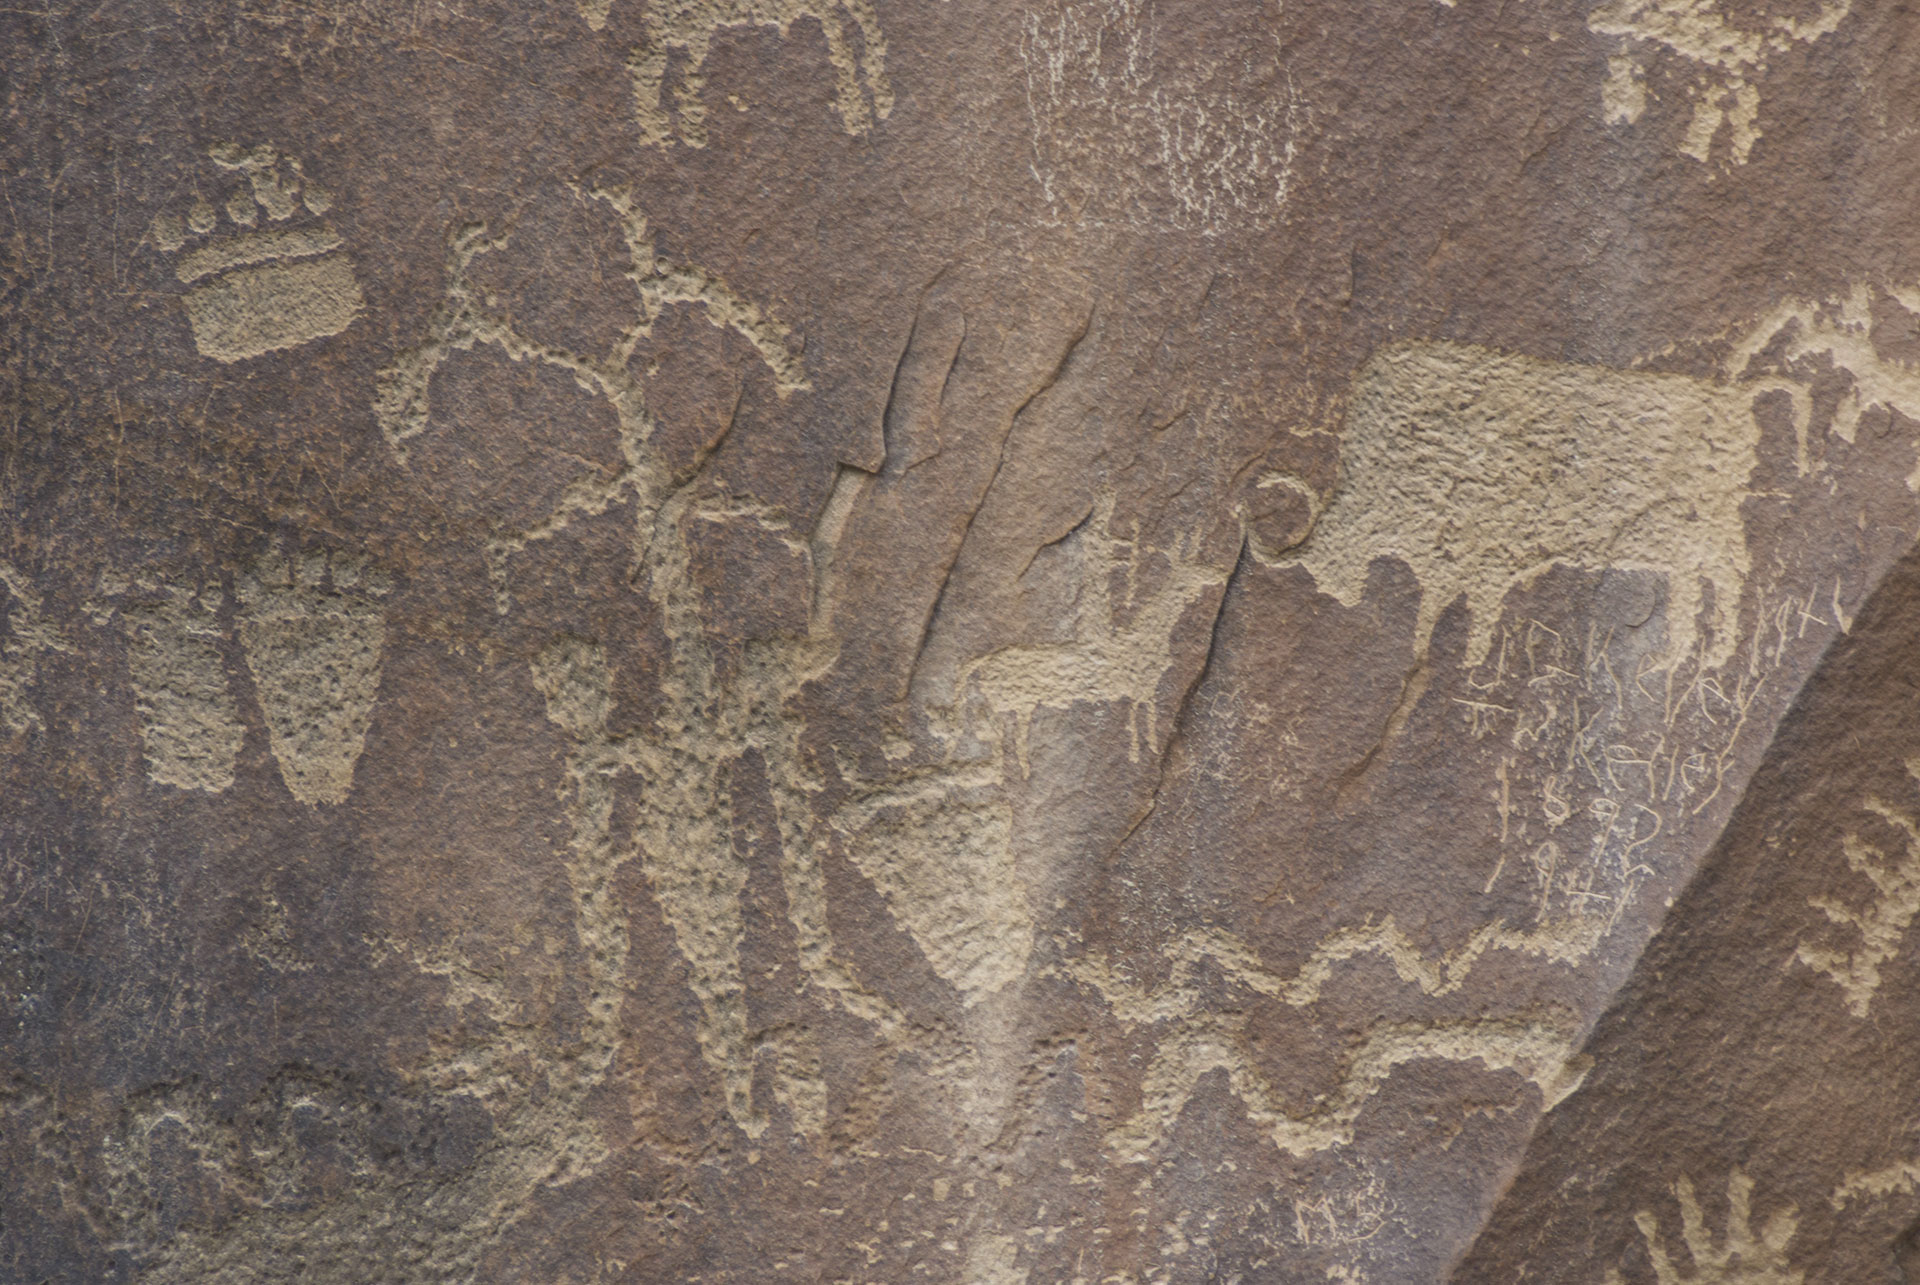 Picture of various motifs: paw prints (bear?), a phytomorph, a hunter riding a horse, a buffalo and two snakes. Newspaper Rock, Utah.